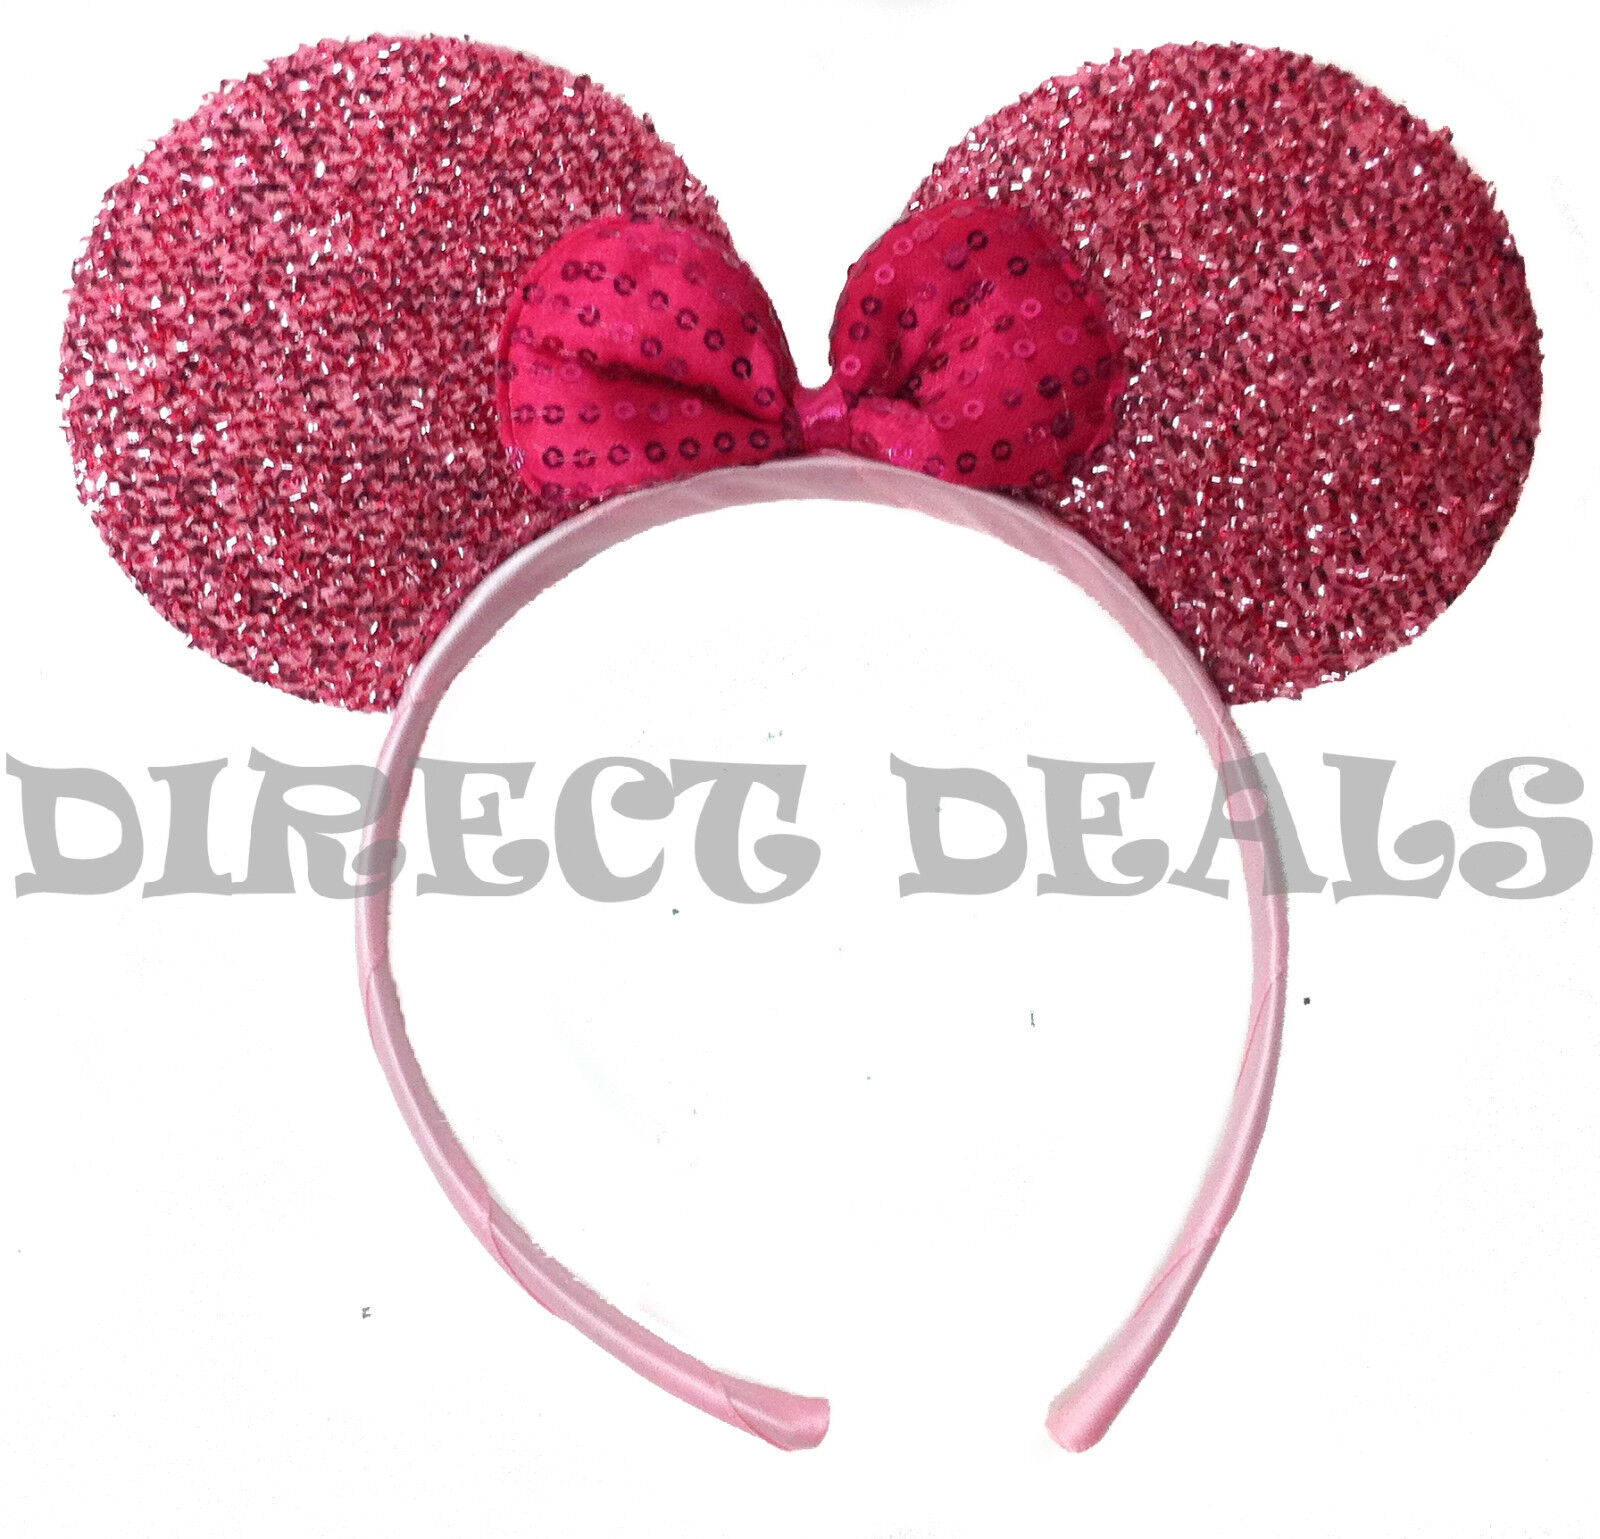 12 Minnie Mouse Ears Shiny Shimmer Silver Pink Headband Party Favors Birthday